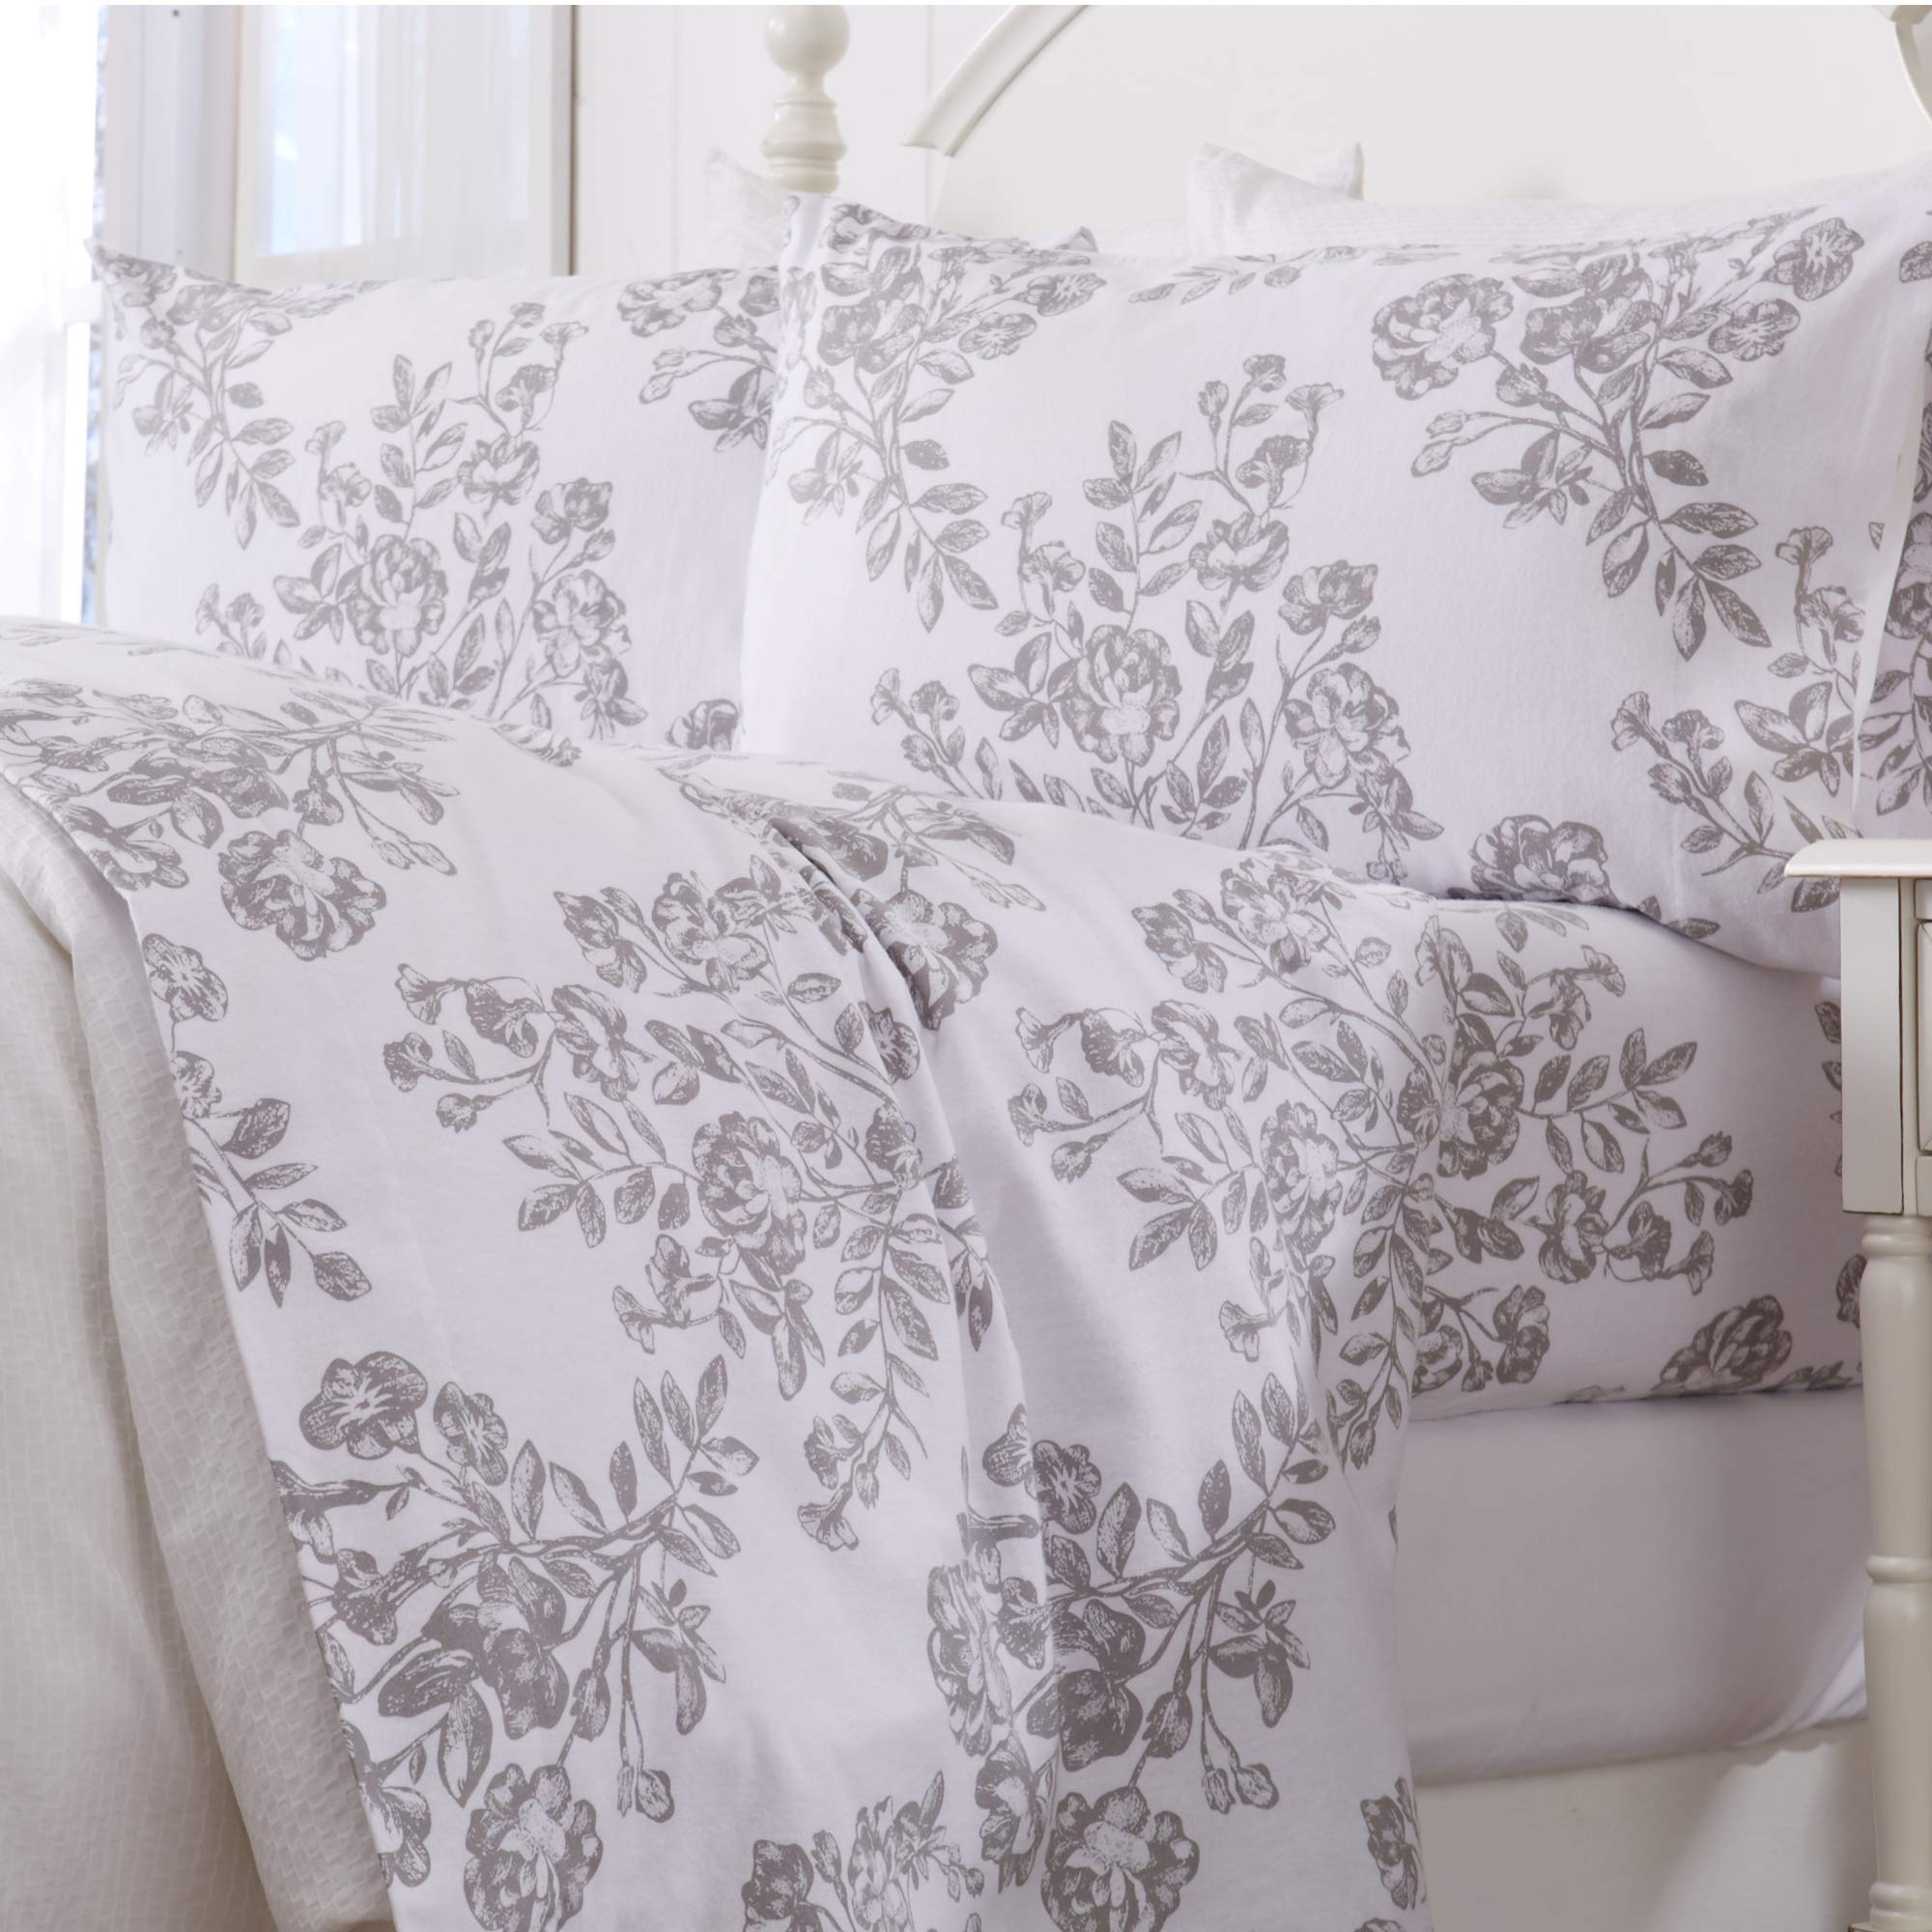 Turkish Cotton Flannel Sheets Collection